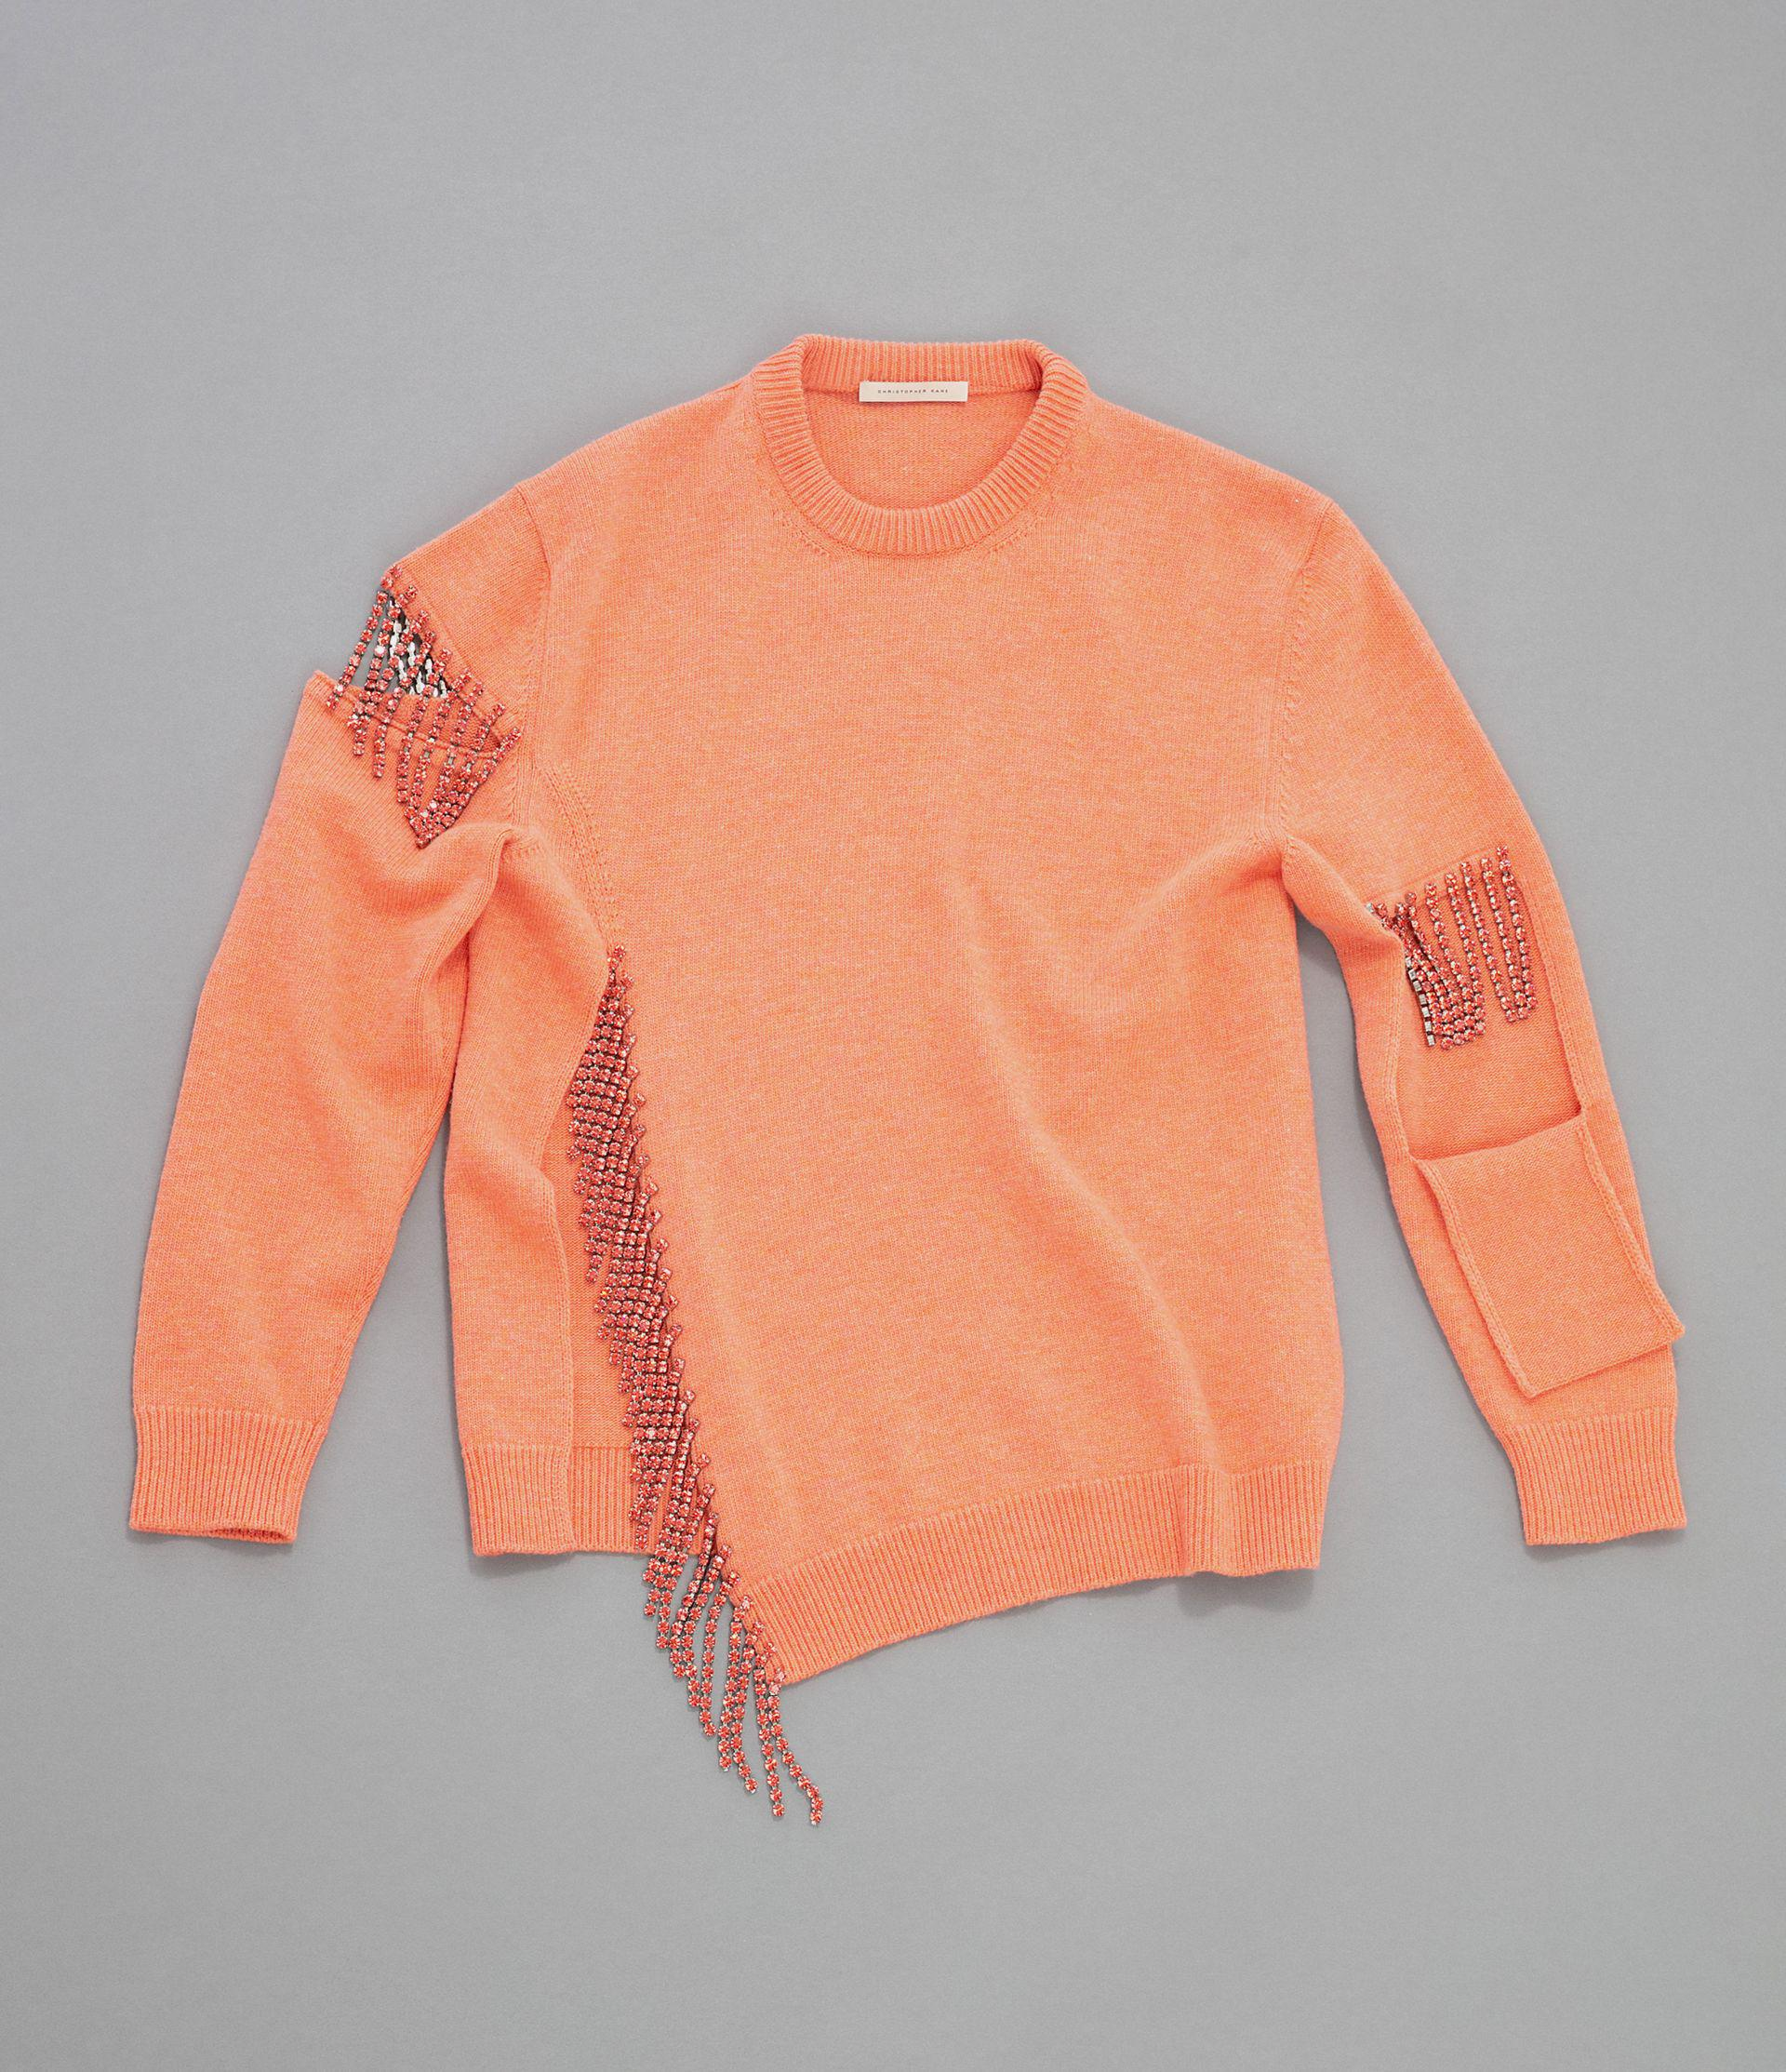 cut-out cupchain knitted sweater 4